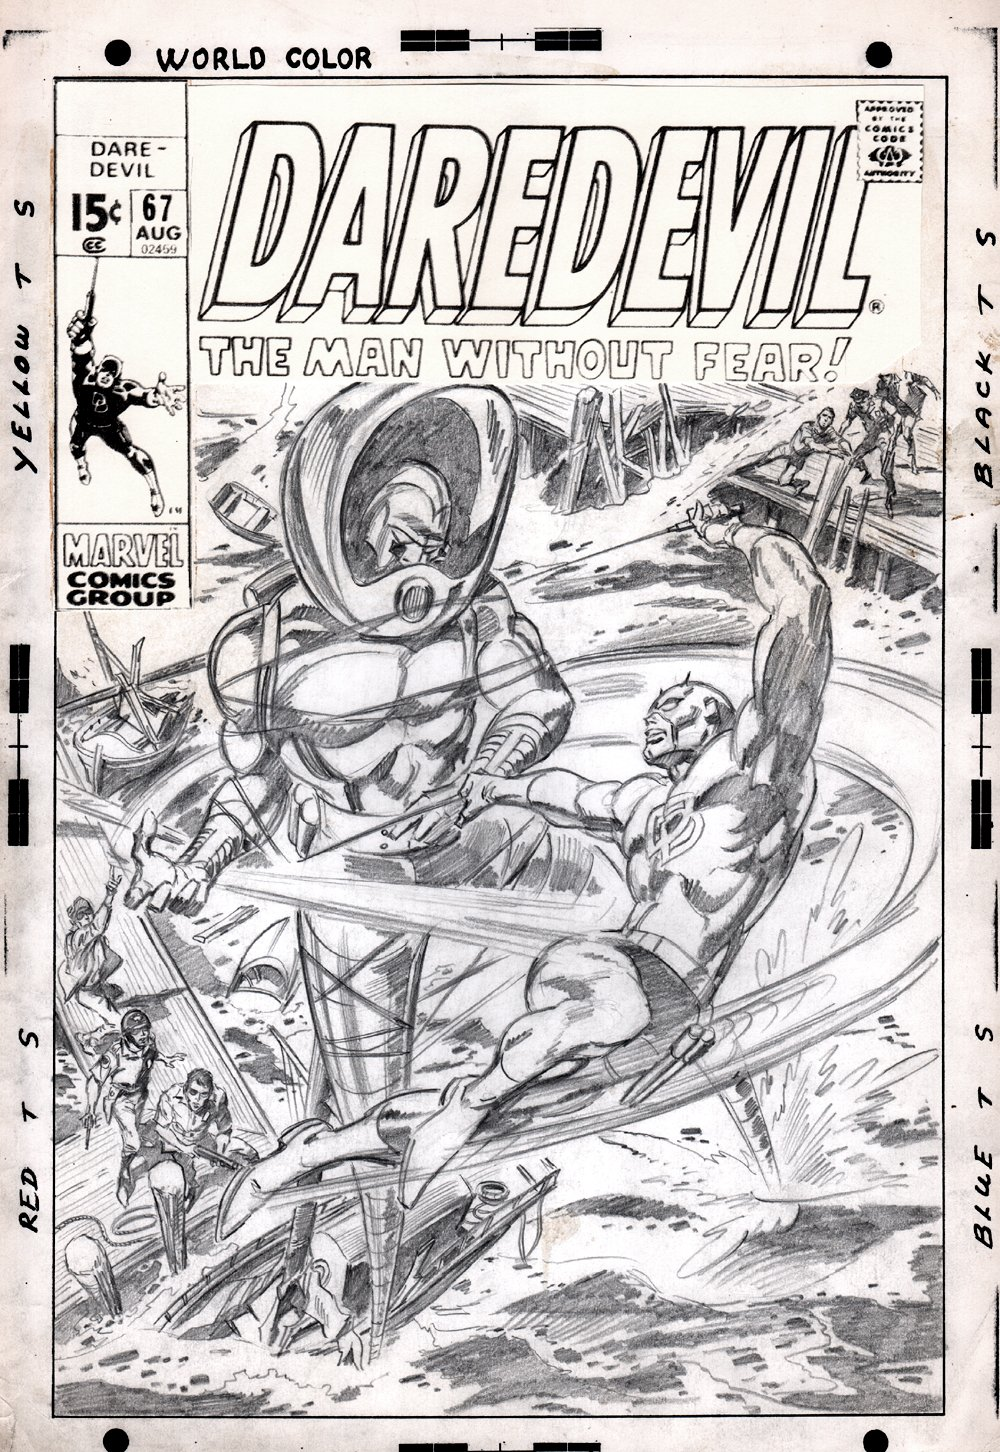 Daredevil #67 Fully Penciled LOST COVER (1970)